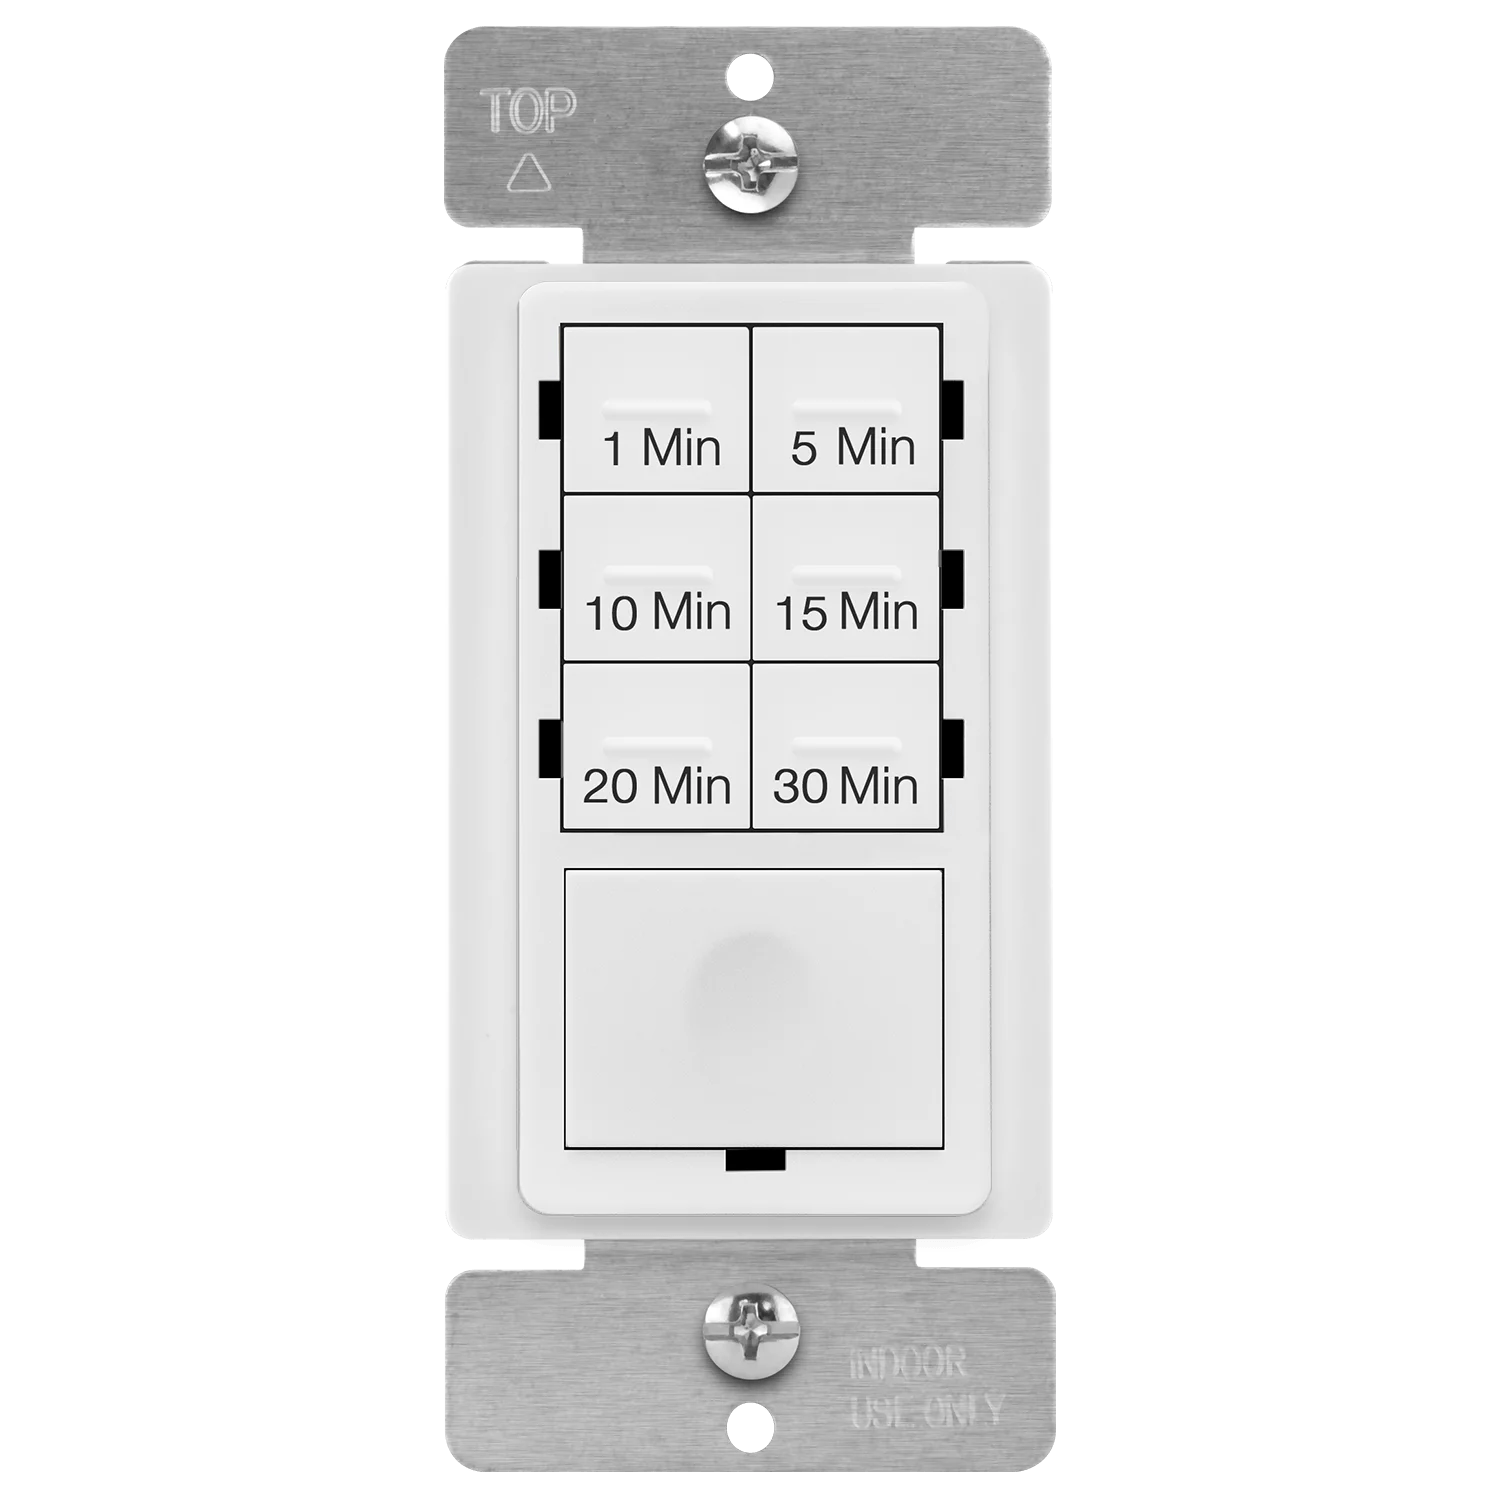 enerlites countdown timer switch for bathroom fans and household lights 1 5 10 15 20 30 min settings with manual override always on blue led